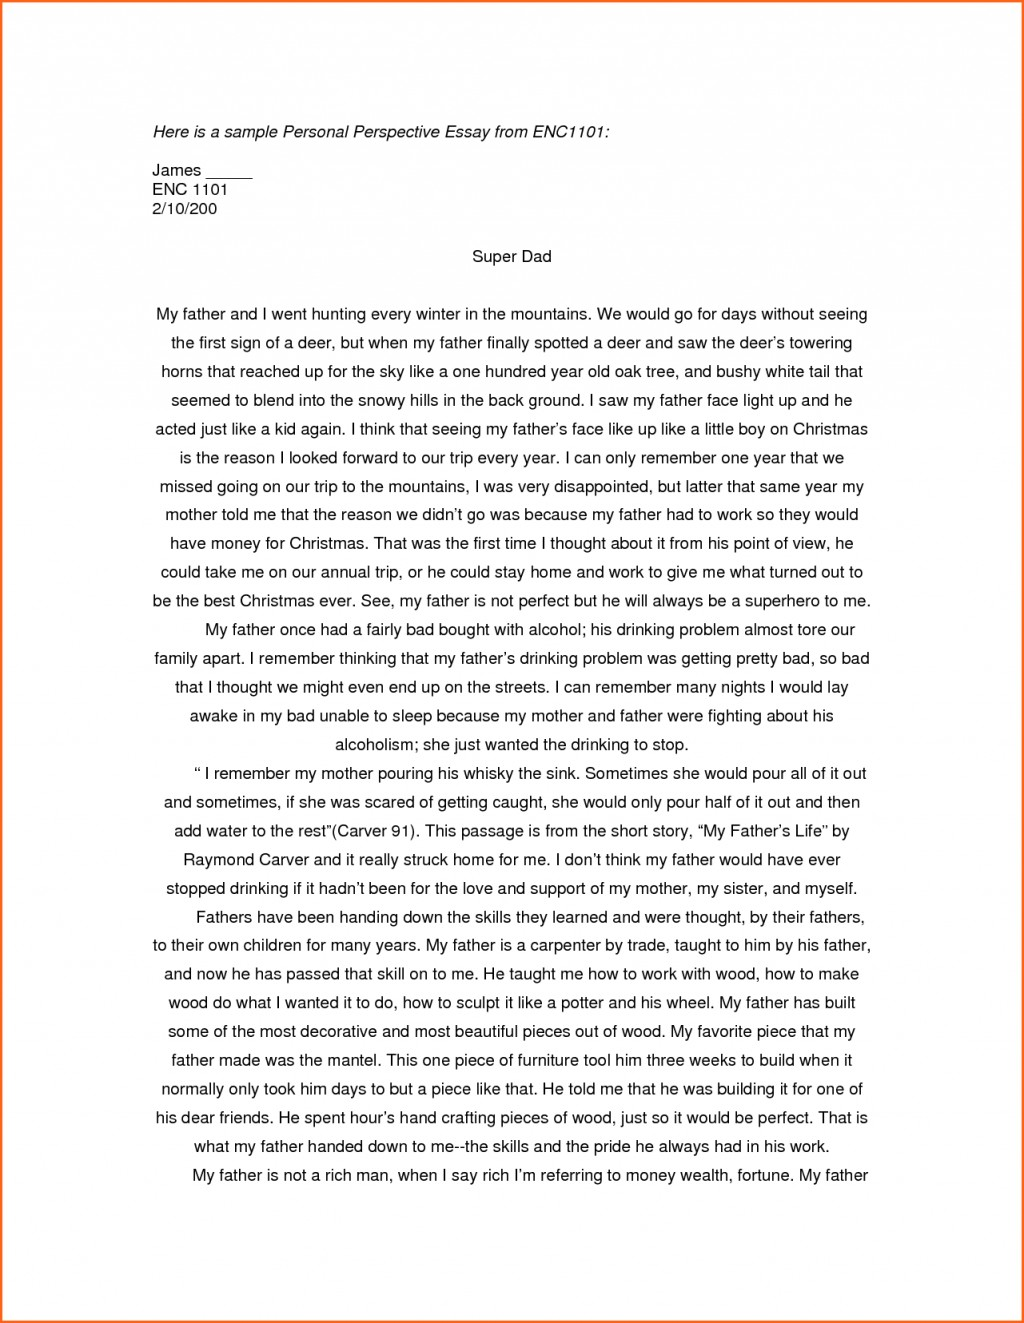 003 Essay Example Examples Of Personal Essays For College Applications L Stupendous Writing Prompts Ks2 Structure Outline Format Scholarships Large